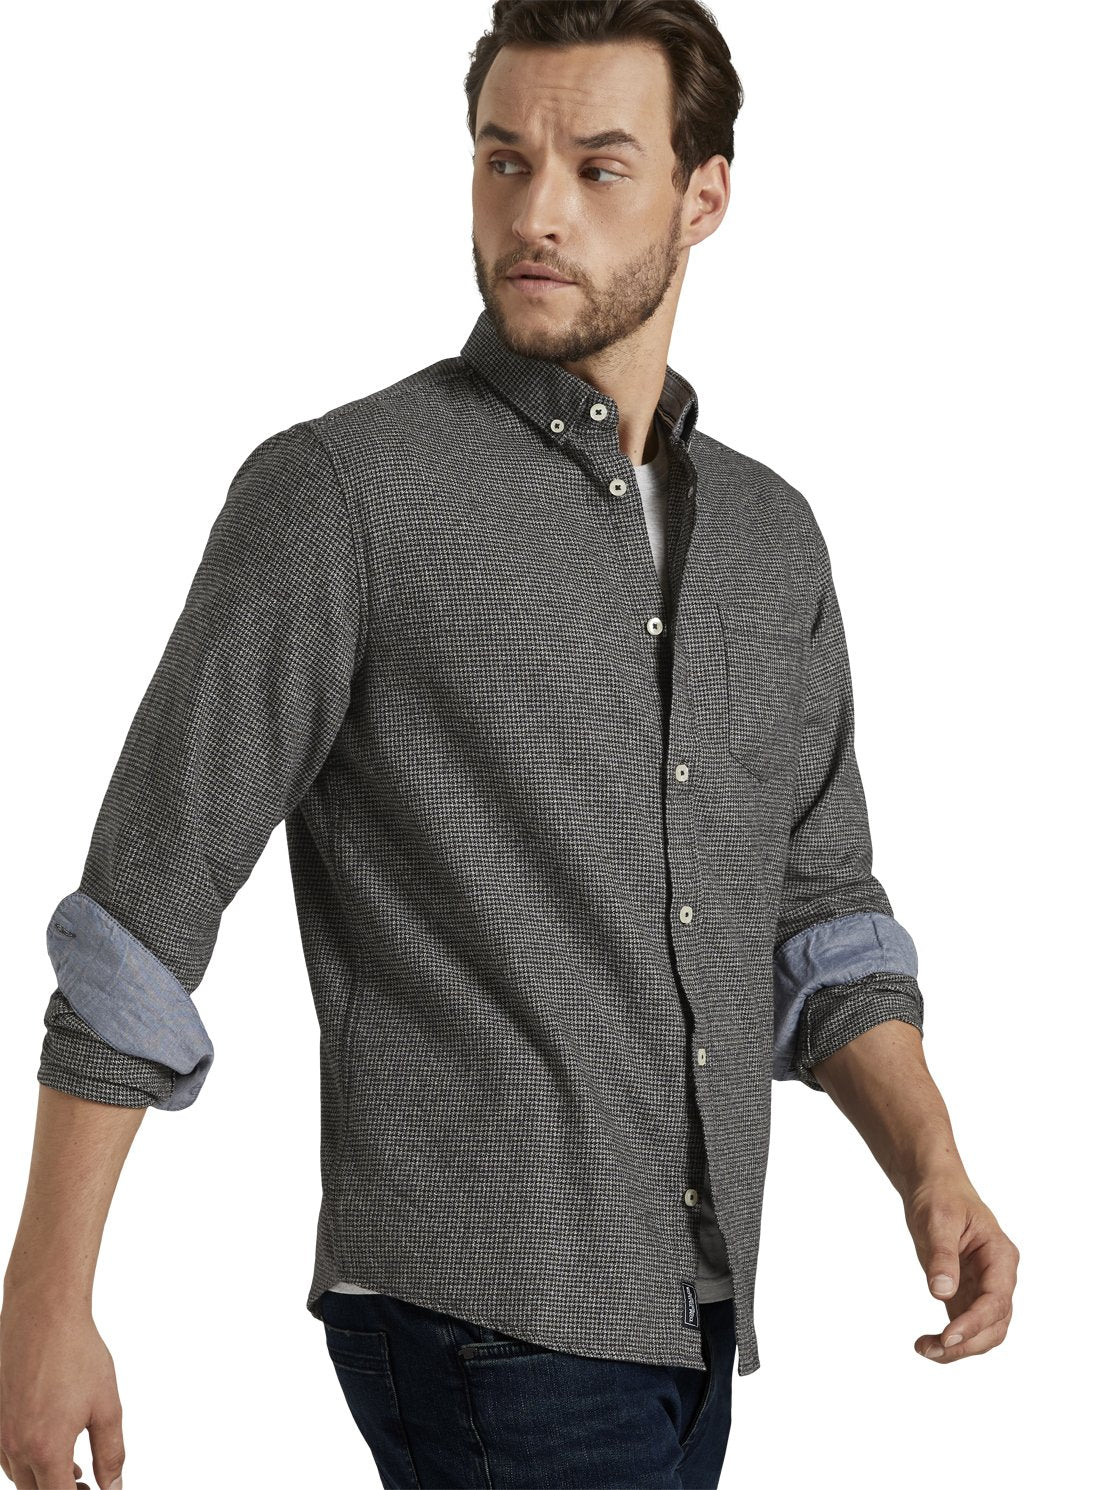 Tom Tailor charcoal shirt 1021254